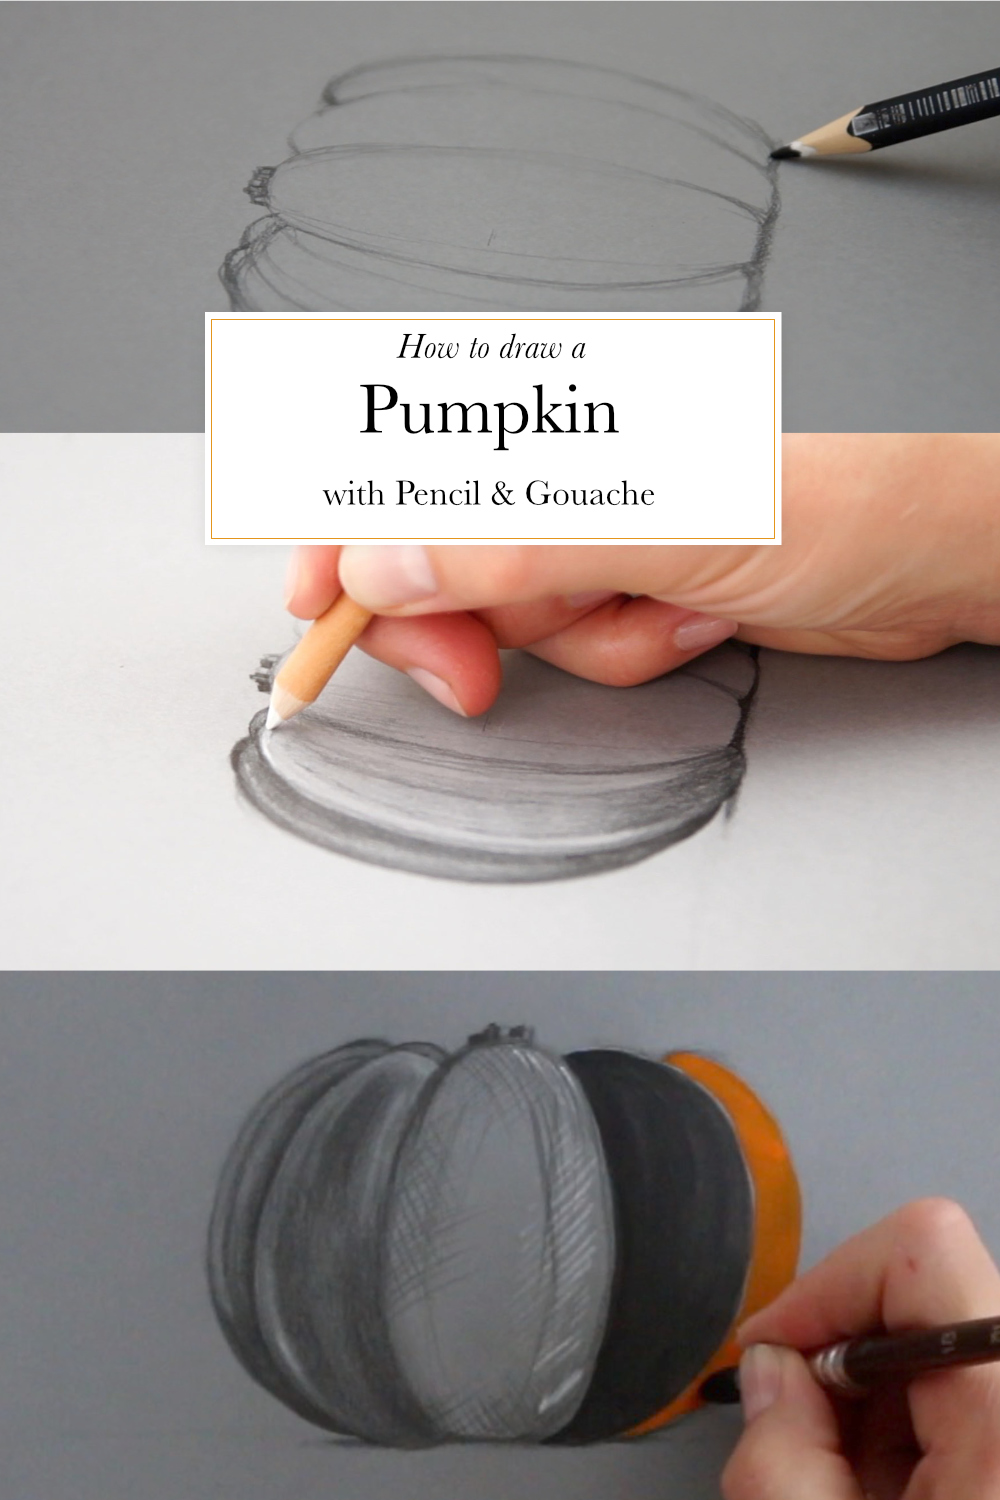 How to draw a pumpkin with pencil and gouache | The Daily Atelier